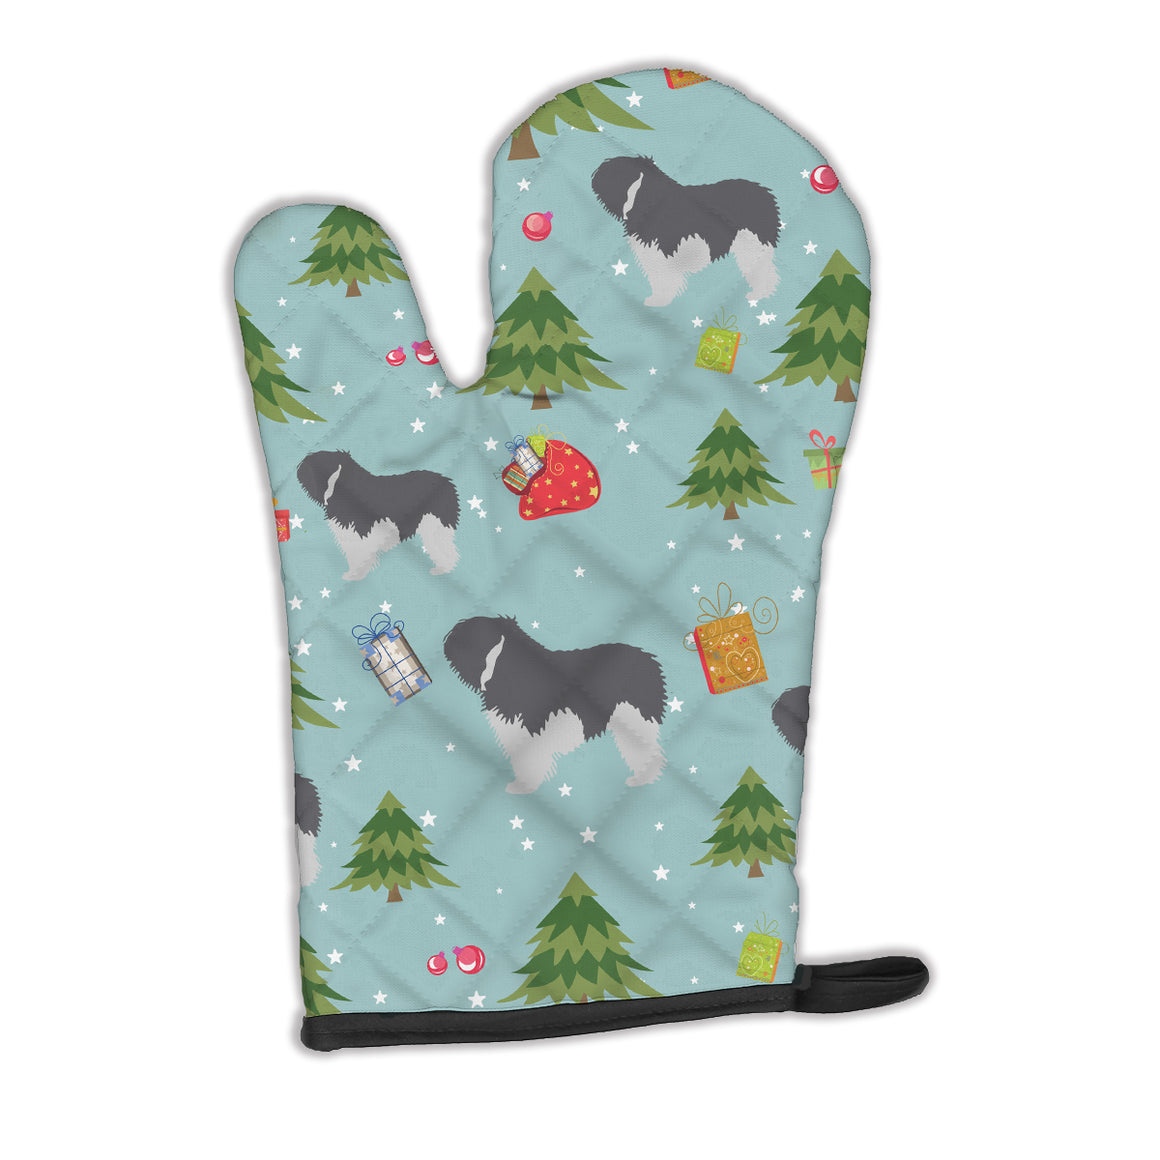 Buy this Christmas Polish Lowland Sheepdog Dog Oven Mitt BB4856OVMT